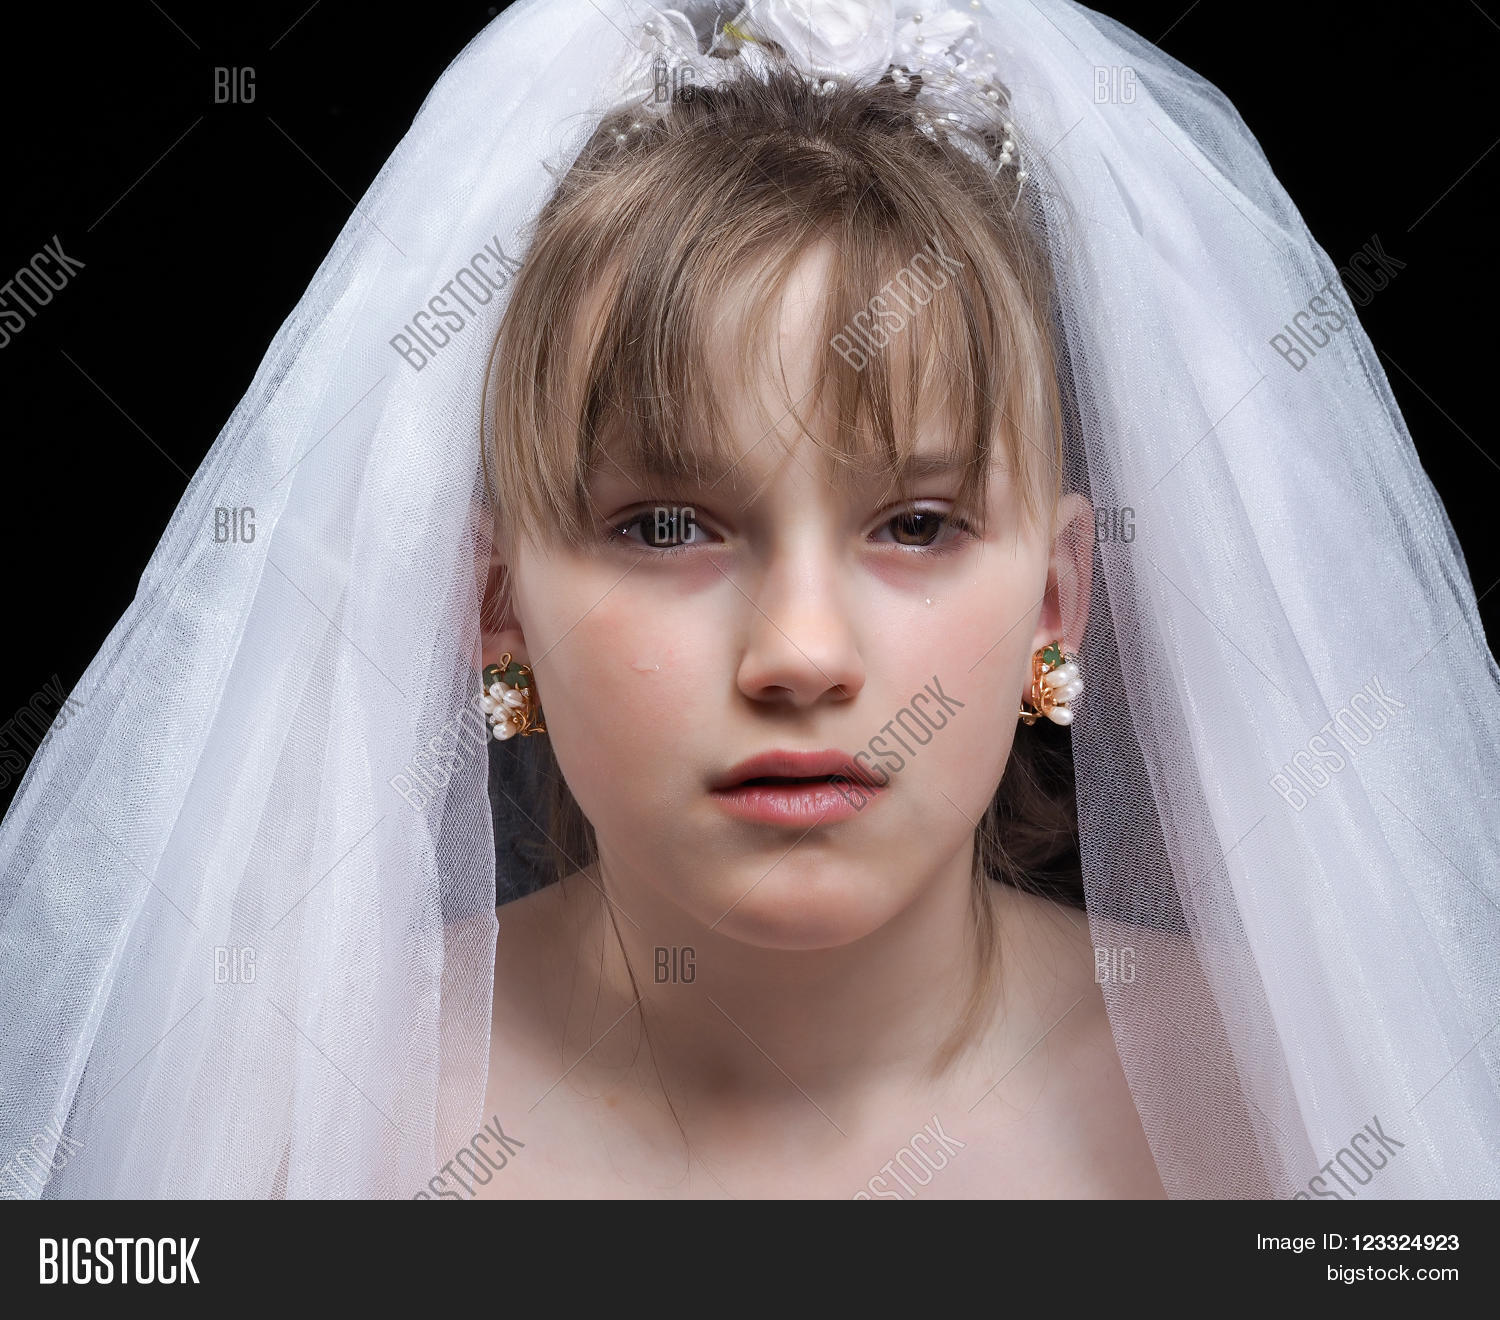 Teen Girl The Bride Portrait Of A Young Weeping Bride